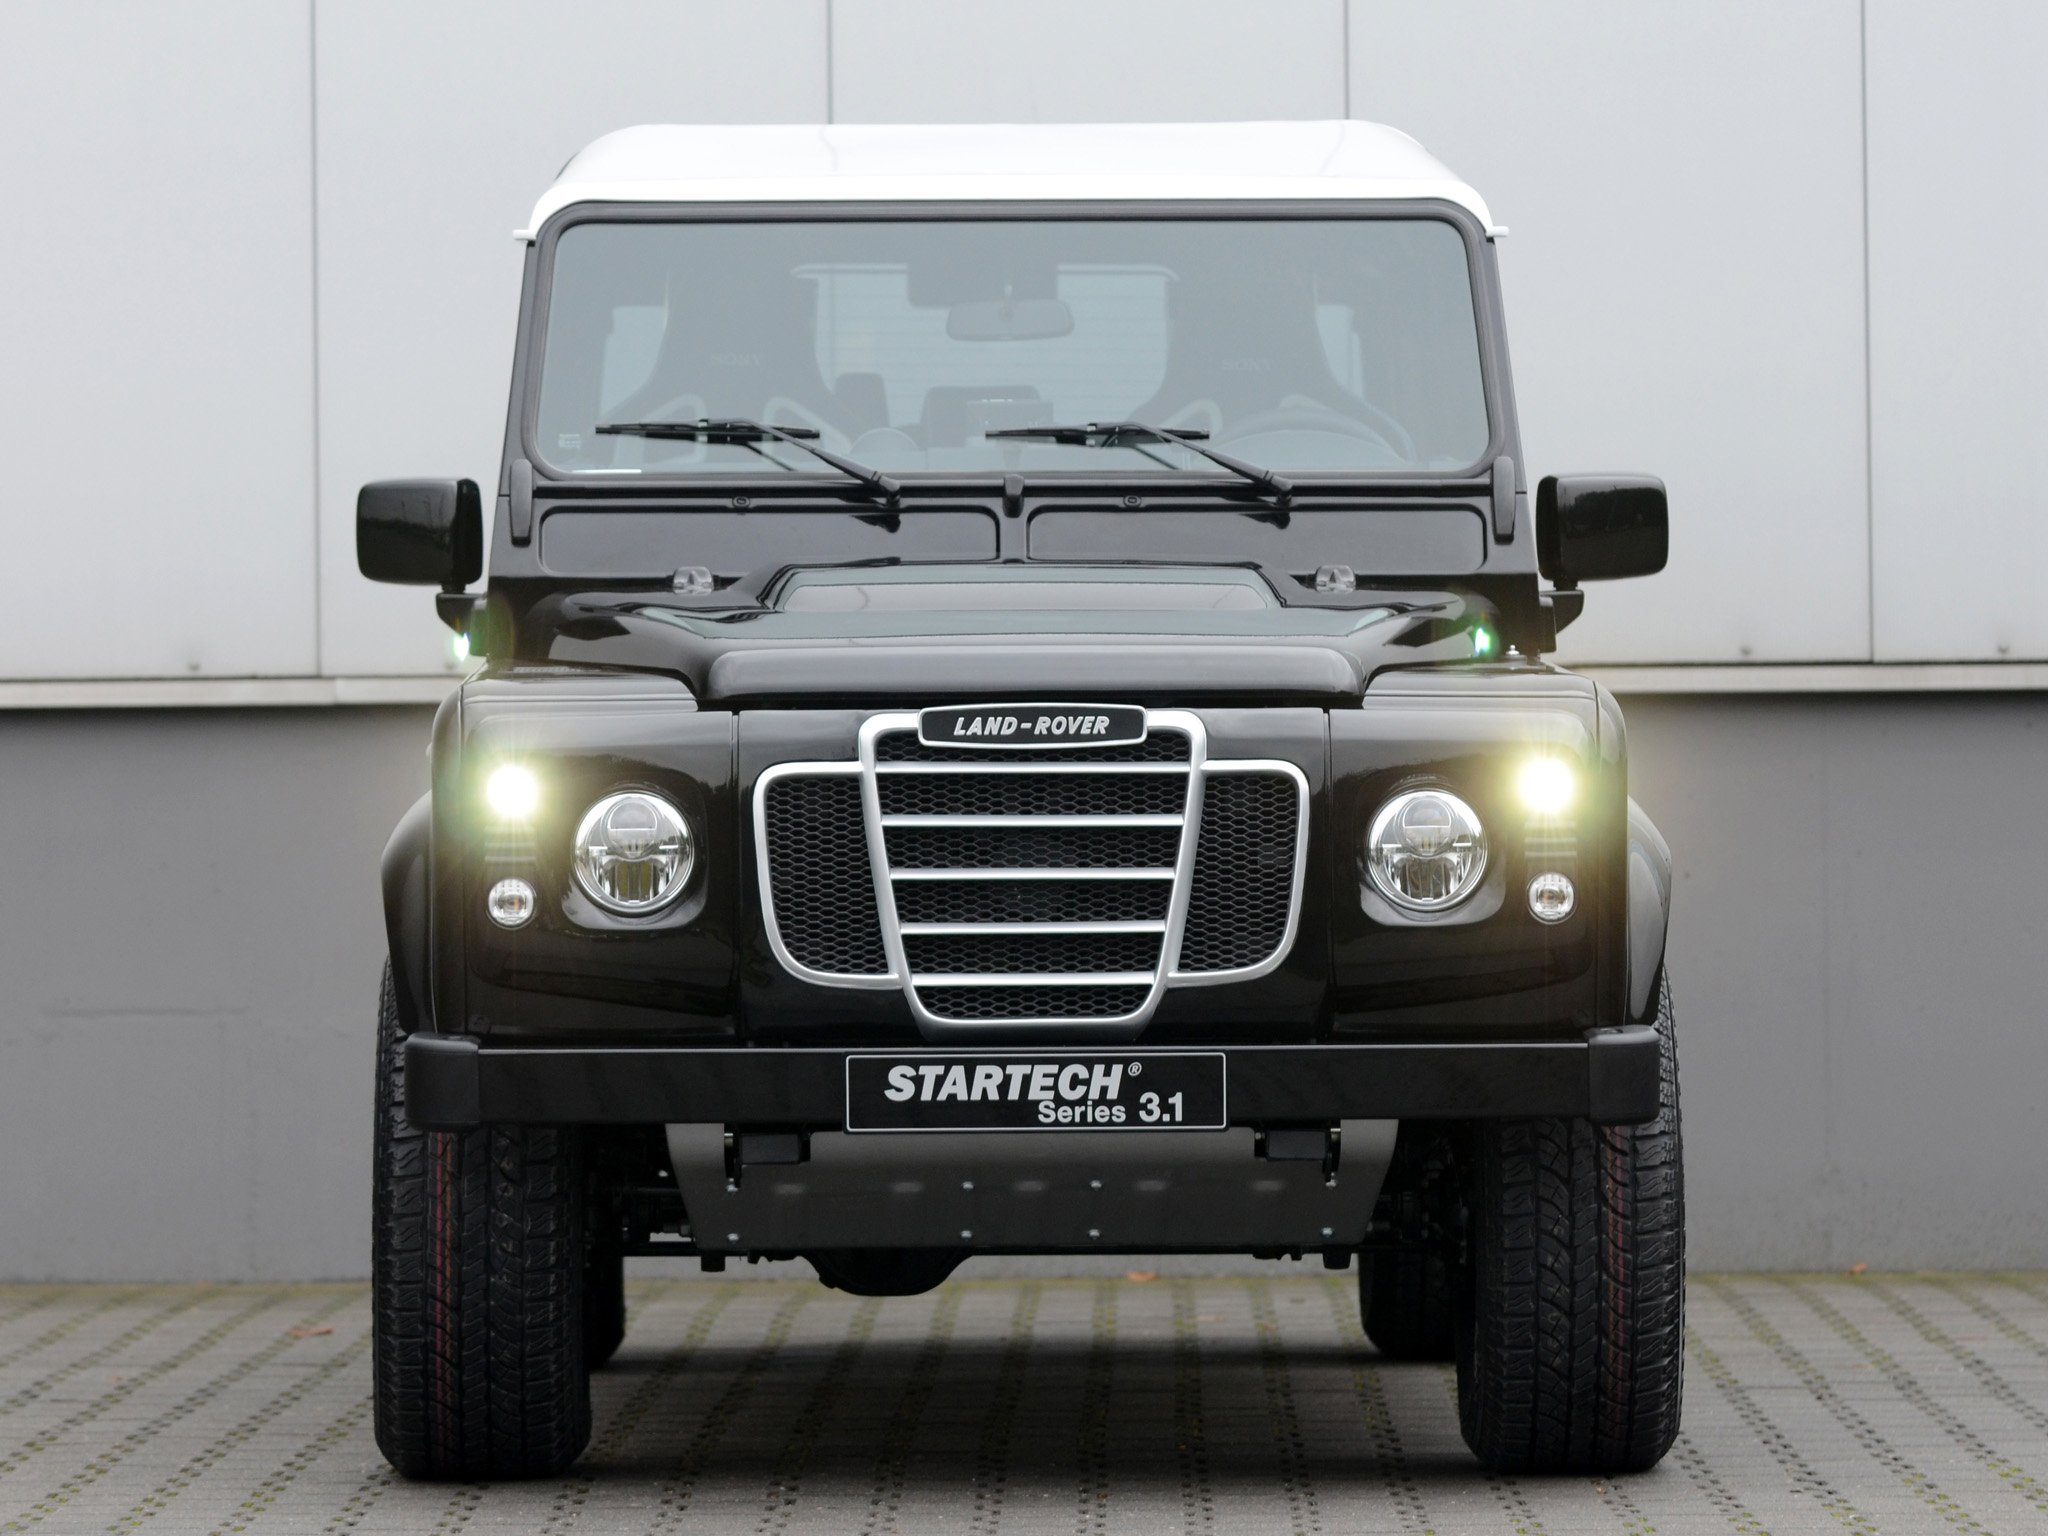 Startech Land Rover Defender Series 3 1 Concept Suv Cars